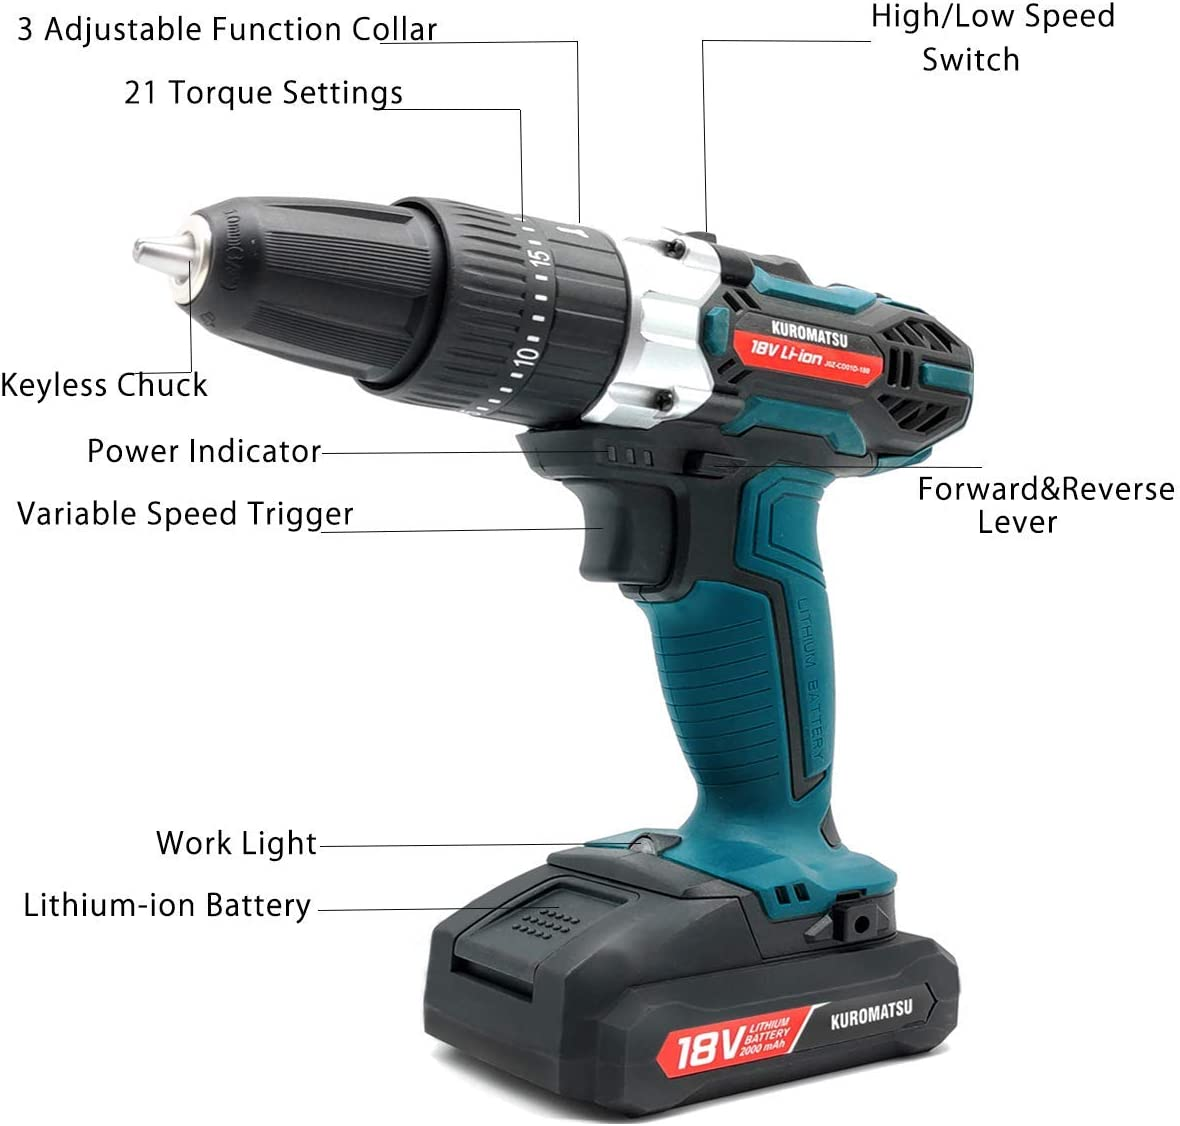 Kuromatsu Electric Drill Cordless Screwdriver Power Drill, 21 3 Torque Gears, DC18V 32N.m 2000mAh Variable Speed, LED Work Light, 34pcs Driver Bits